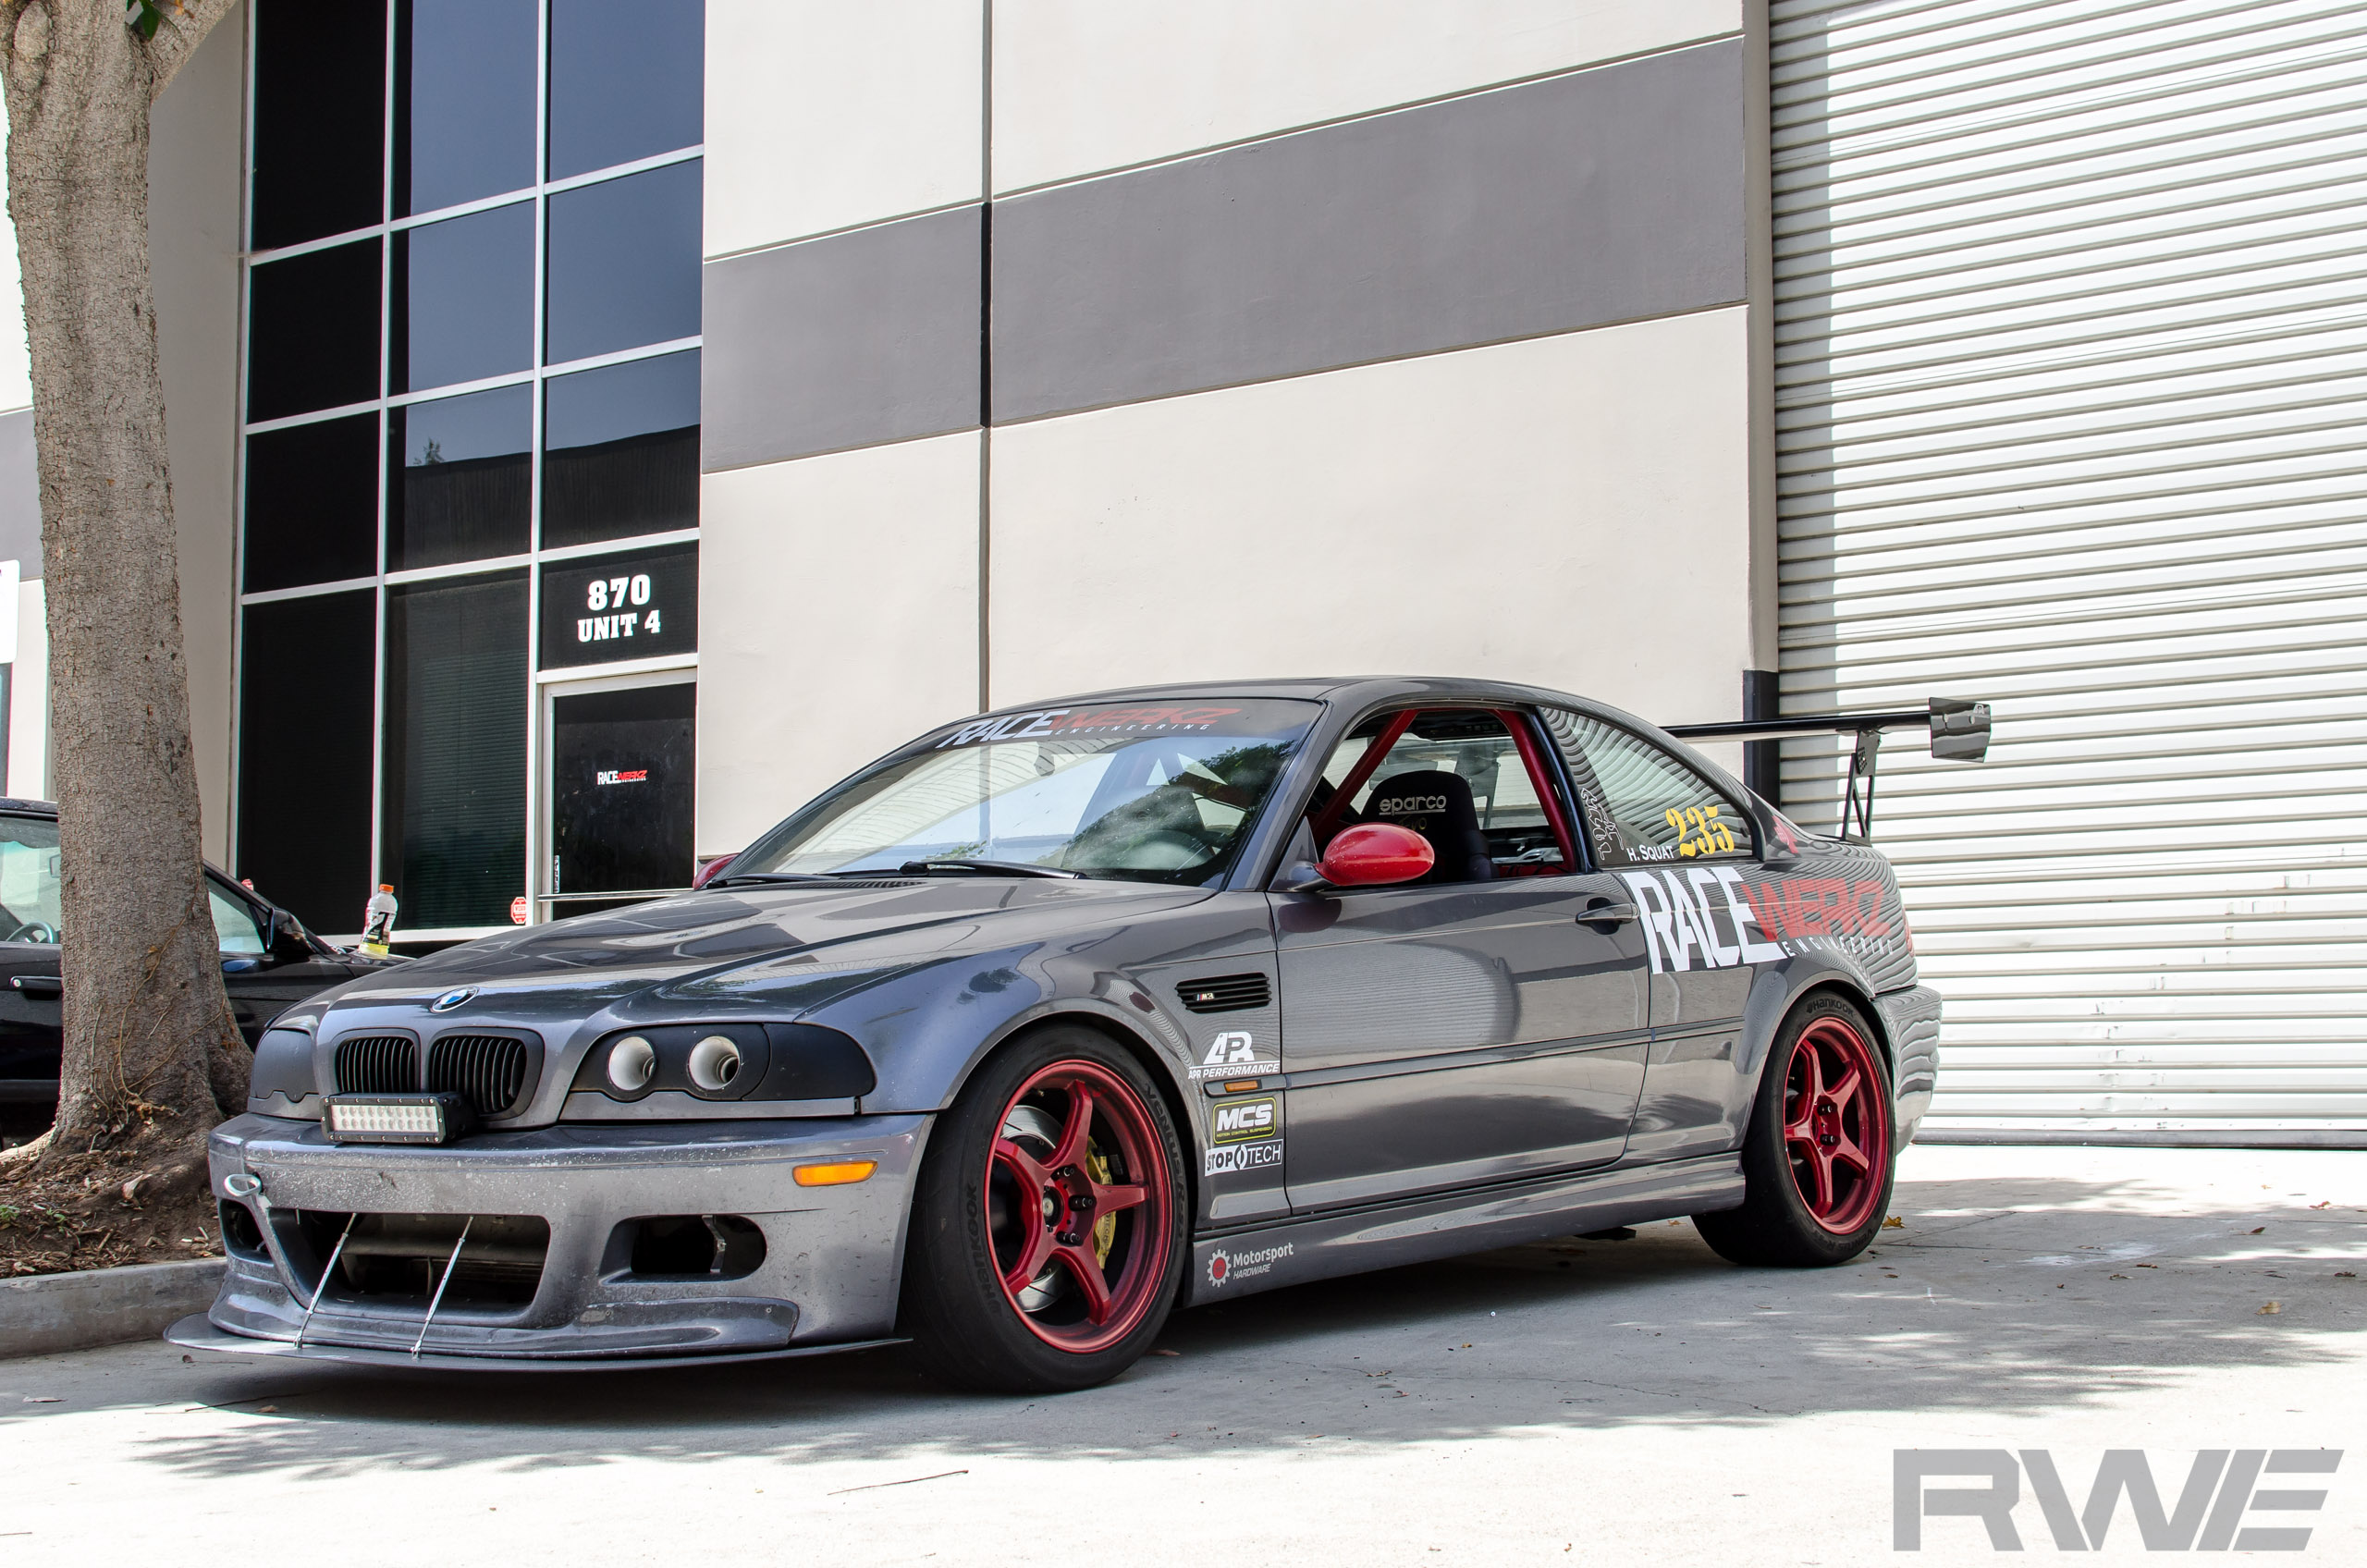 Rwe Silver Gray E46 M3 Track Build